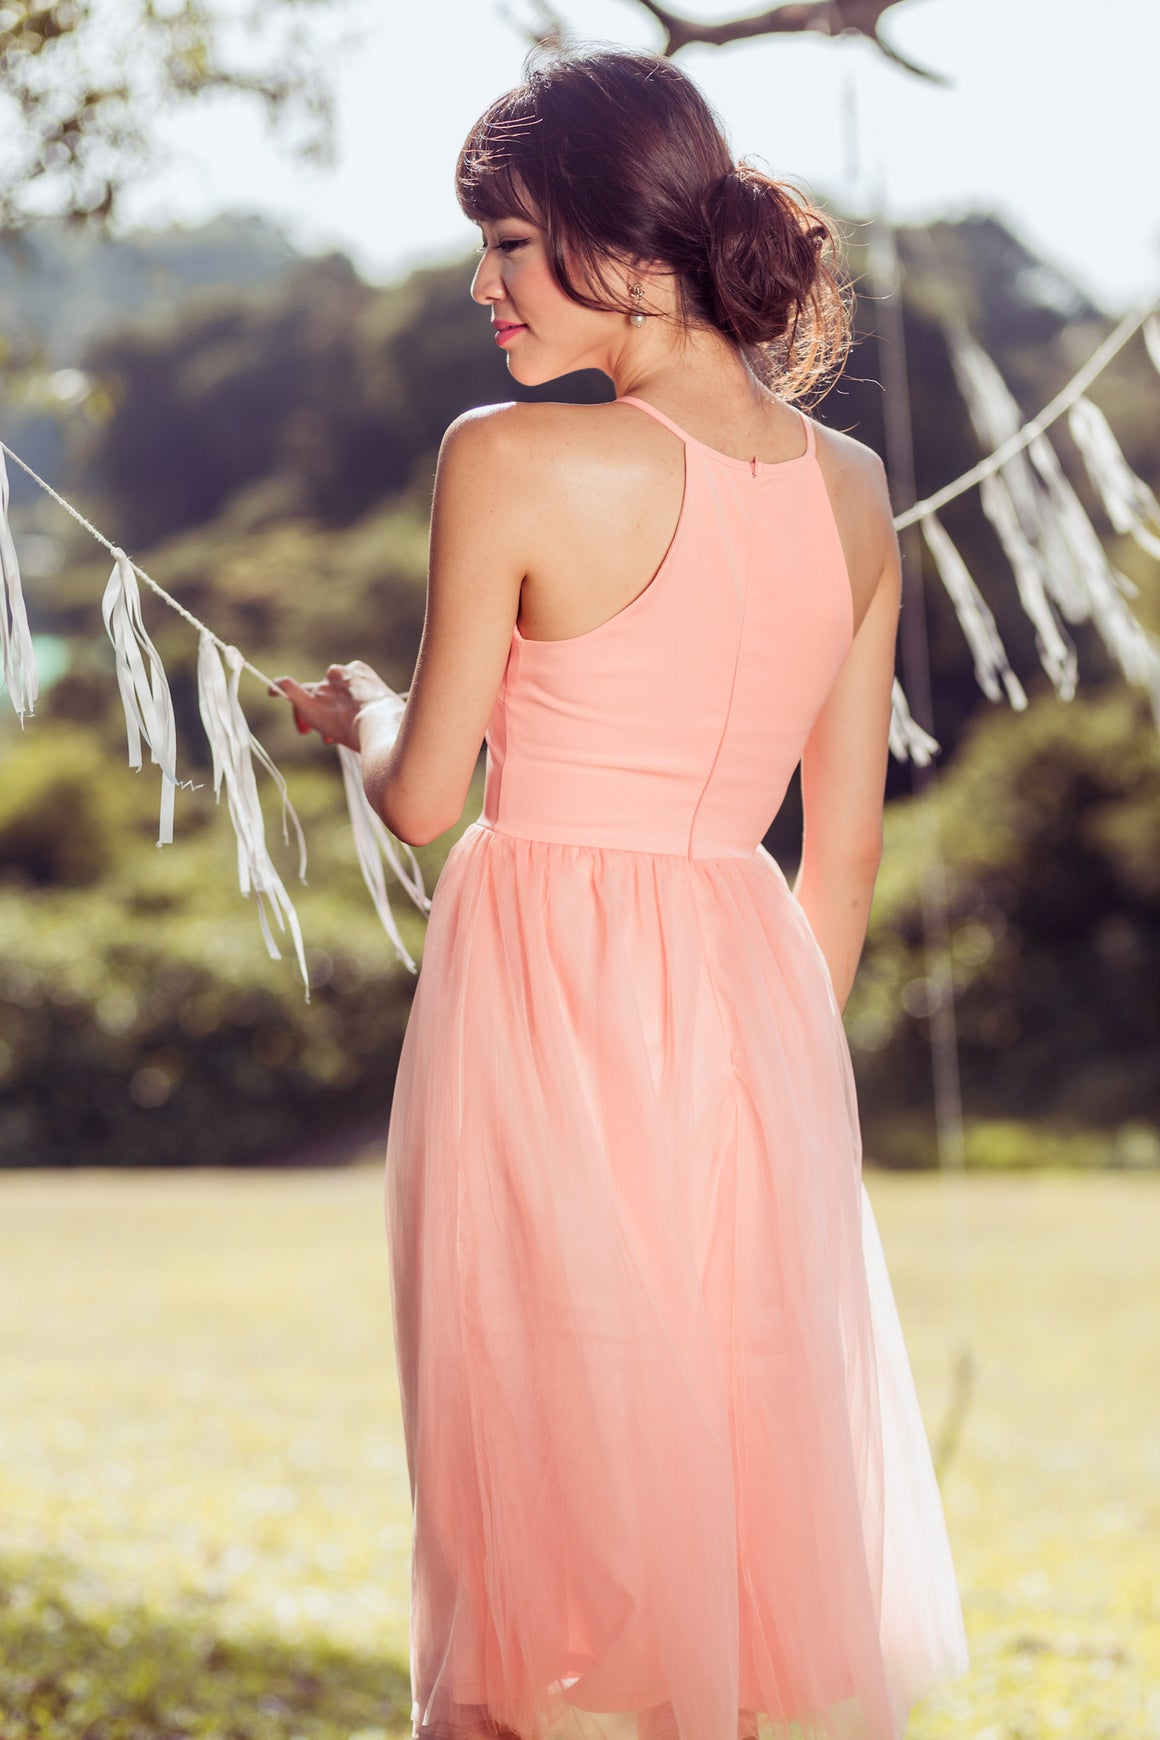 Restocked** Midsummer's Night Tulle Dress In Peach Pink